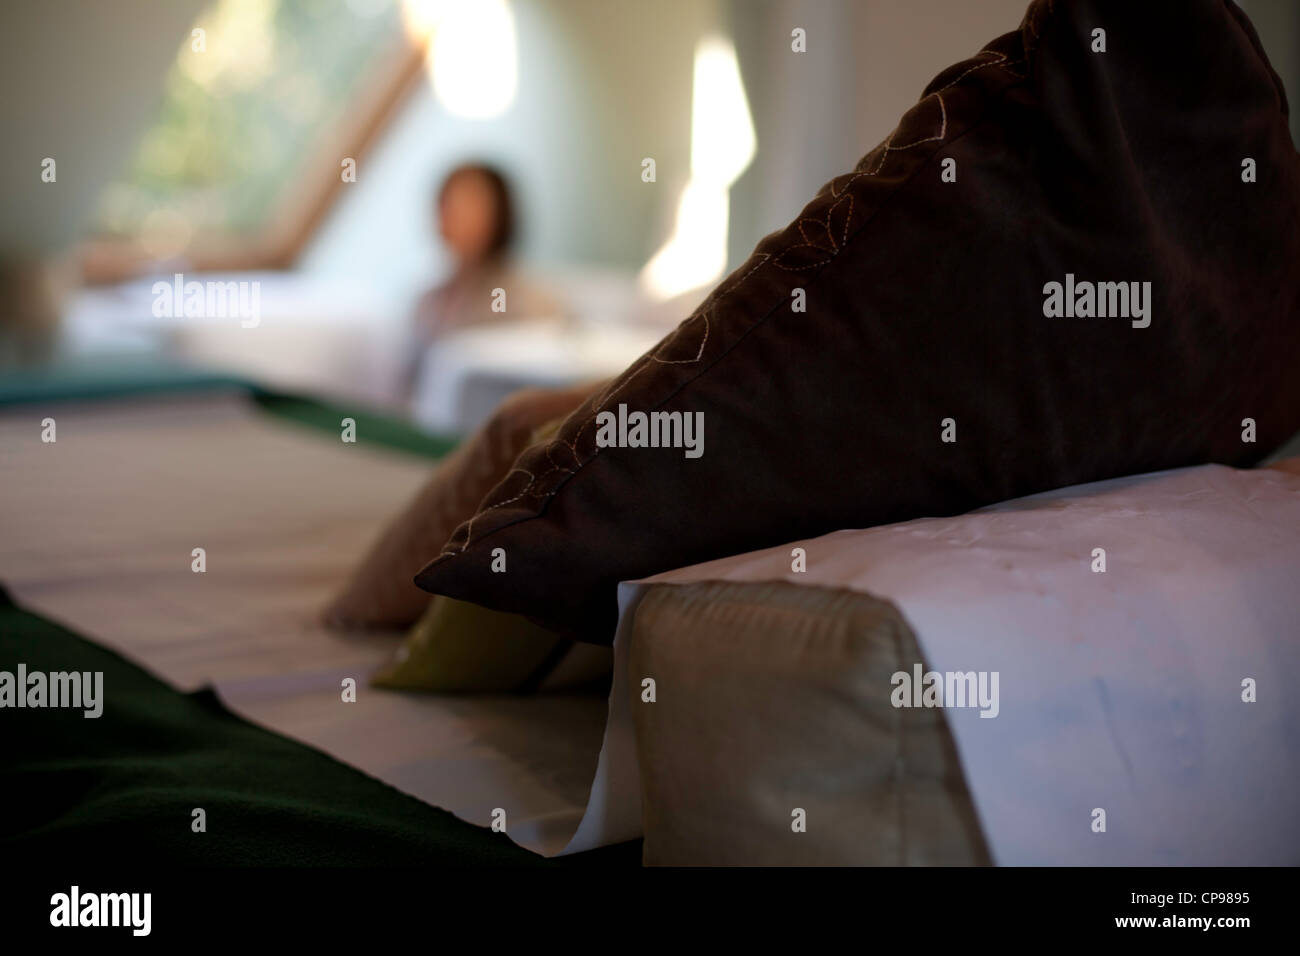 Treatment Room - Stock Image